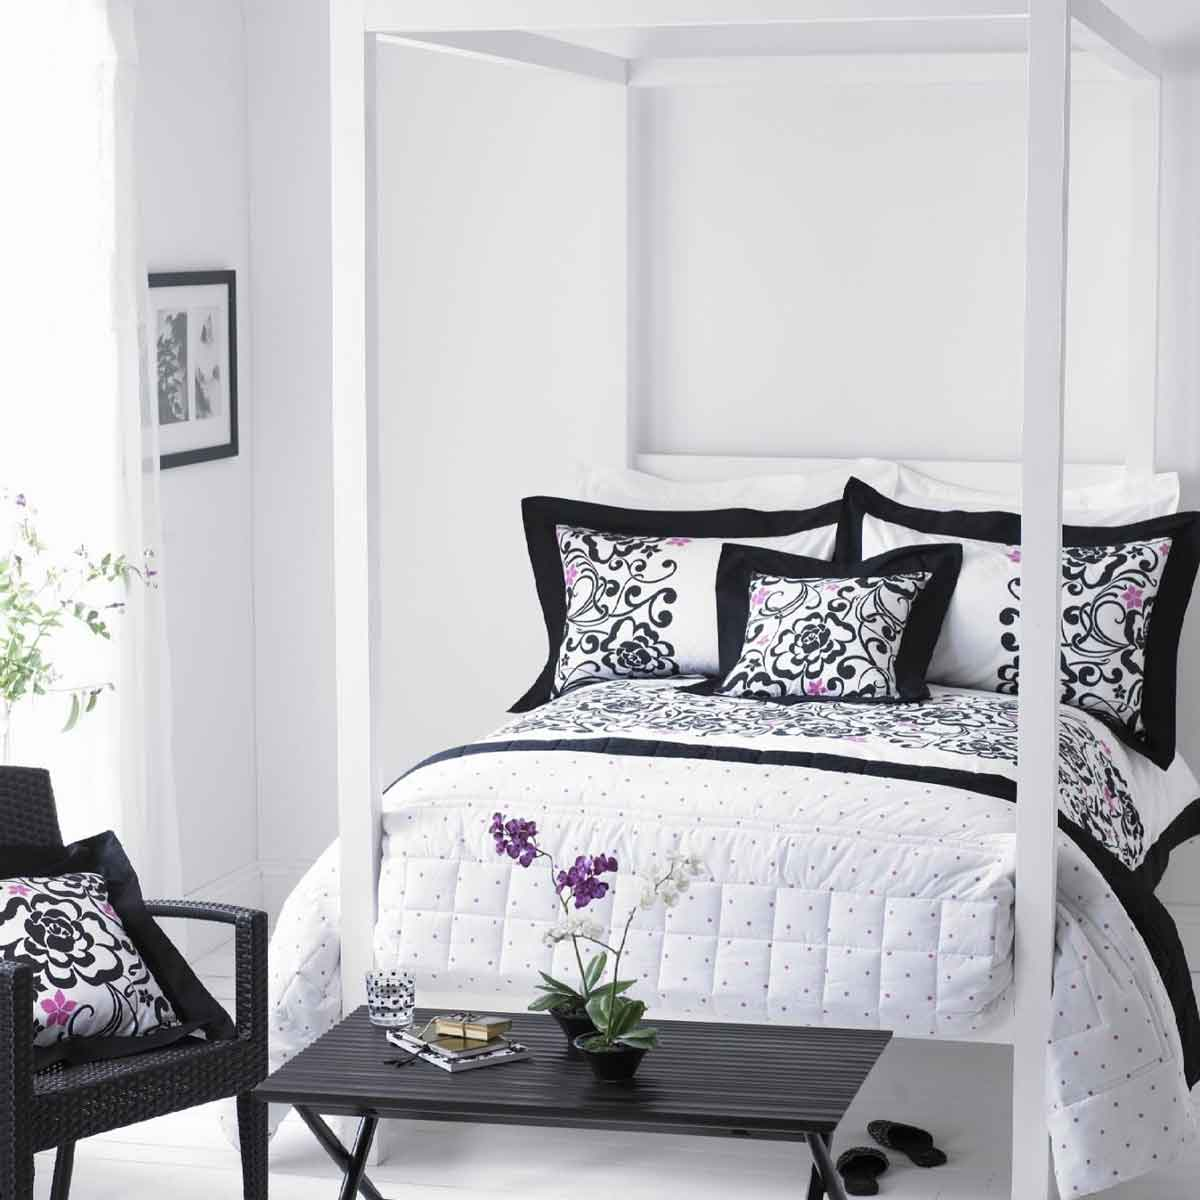 Black and white bedroom decorating ideas dream house for Black modern decor